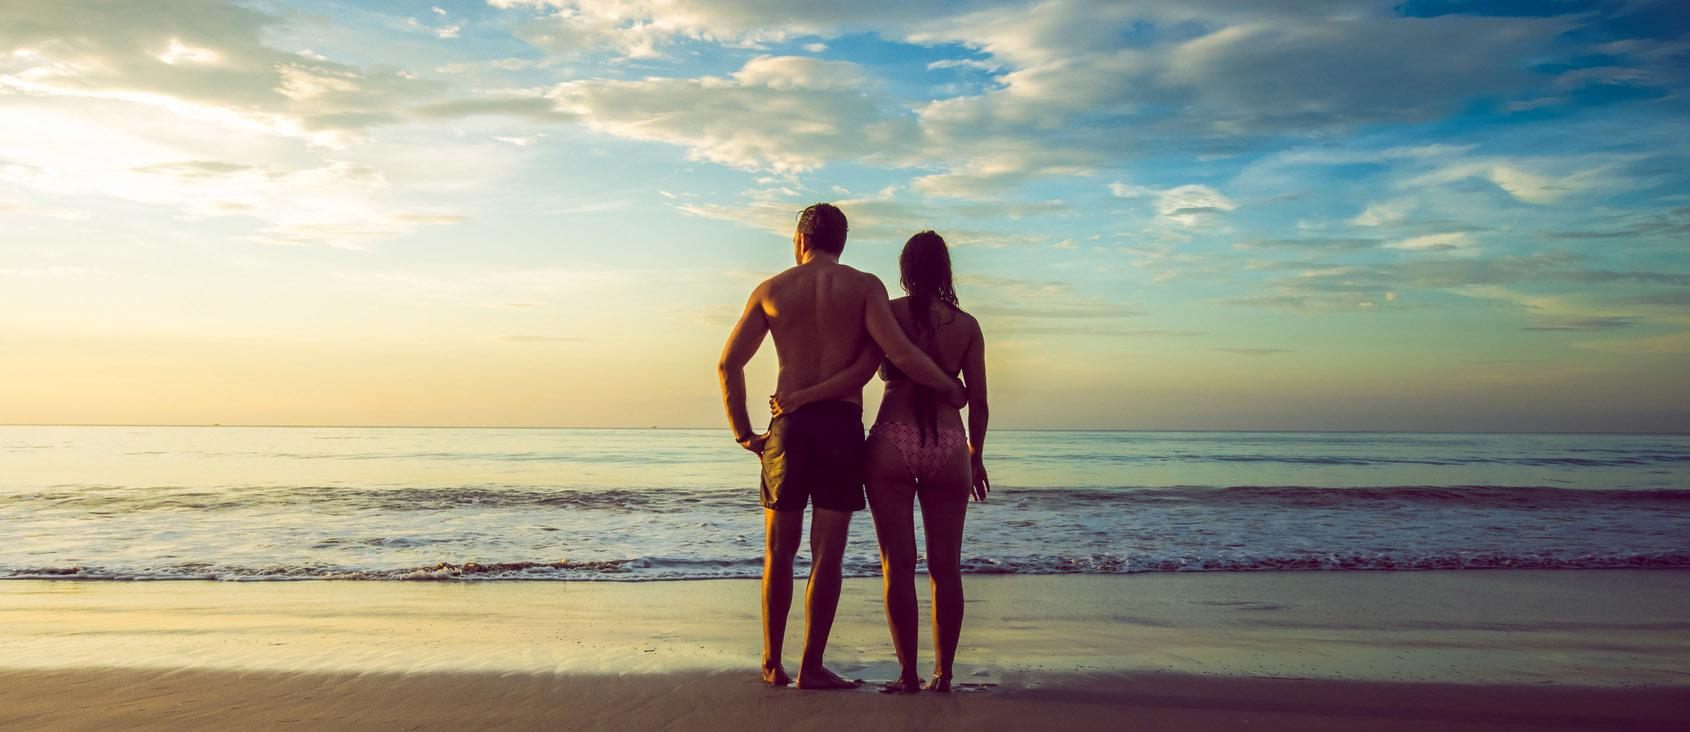 12 Amazing Cheap Honeymoon Ideas For Your Rest